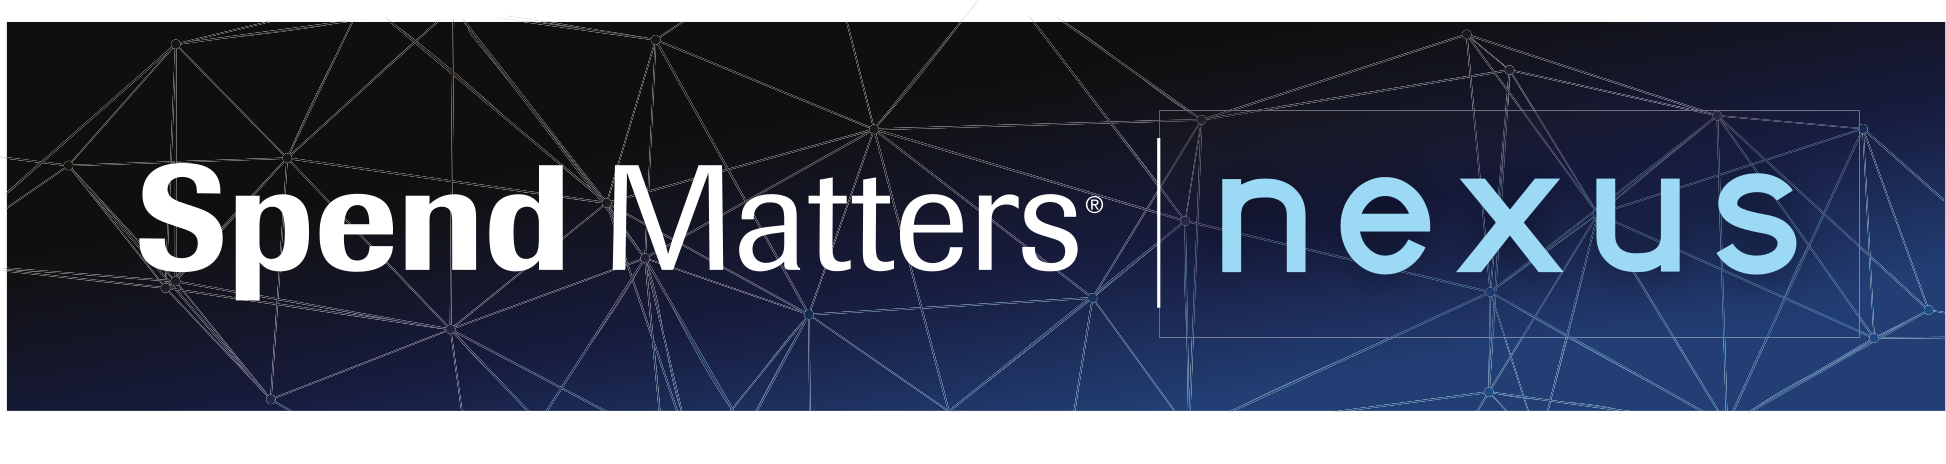 SPEND MATTERS NEXUS LOGO